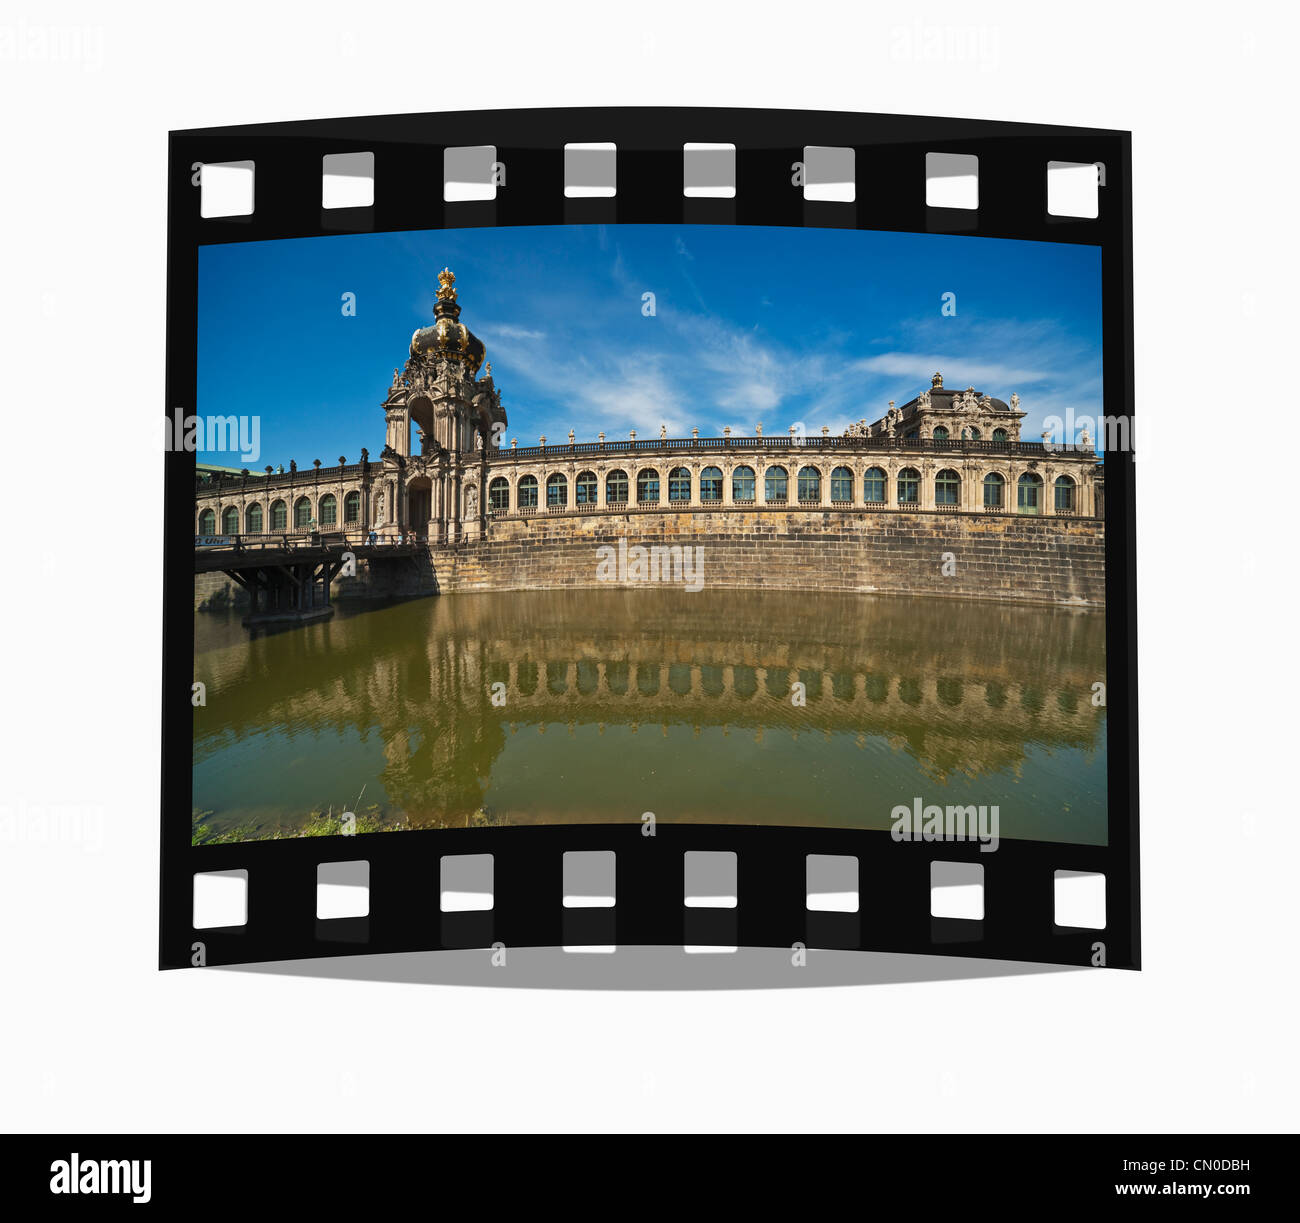 Filmstrip: View over Zwinger moat to Crown Gate, Dresden, Saxony, Germany, Europe - Stock Image